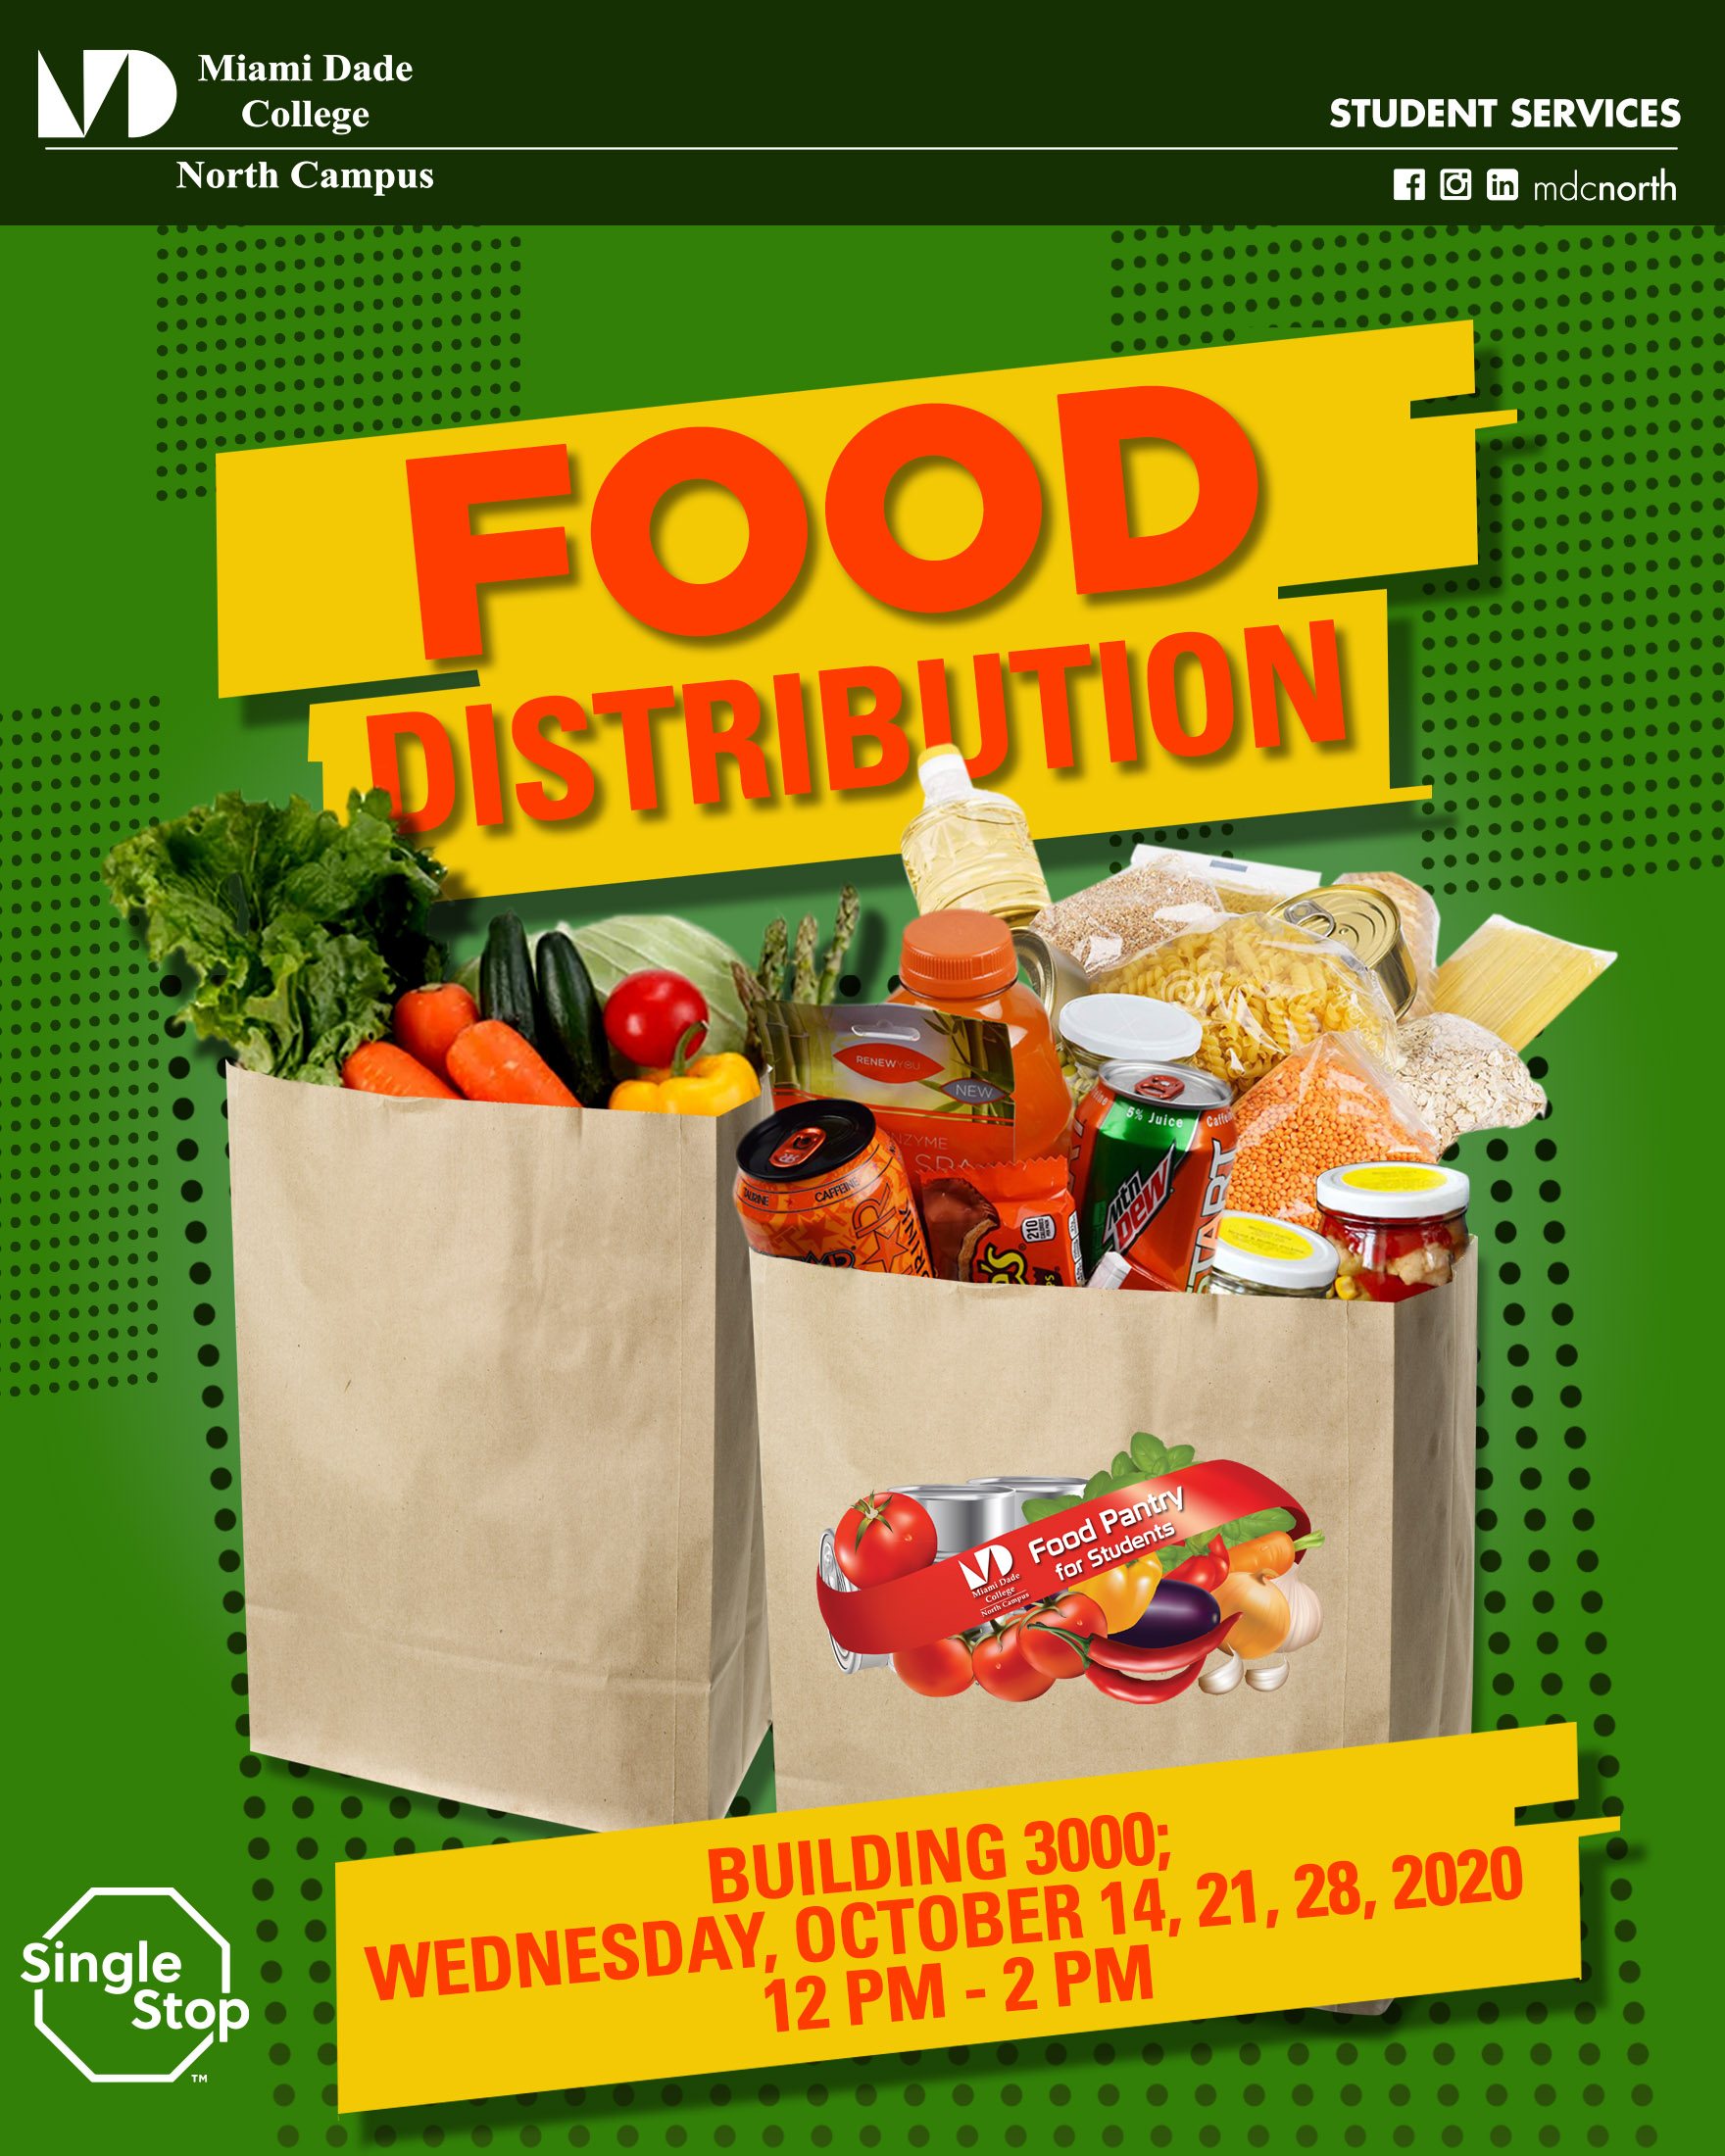 Food Pantry Distributions - North Campus